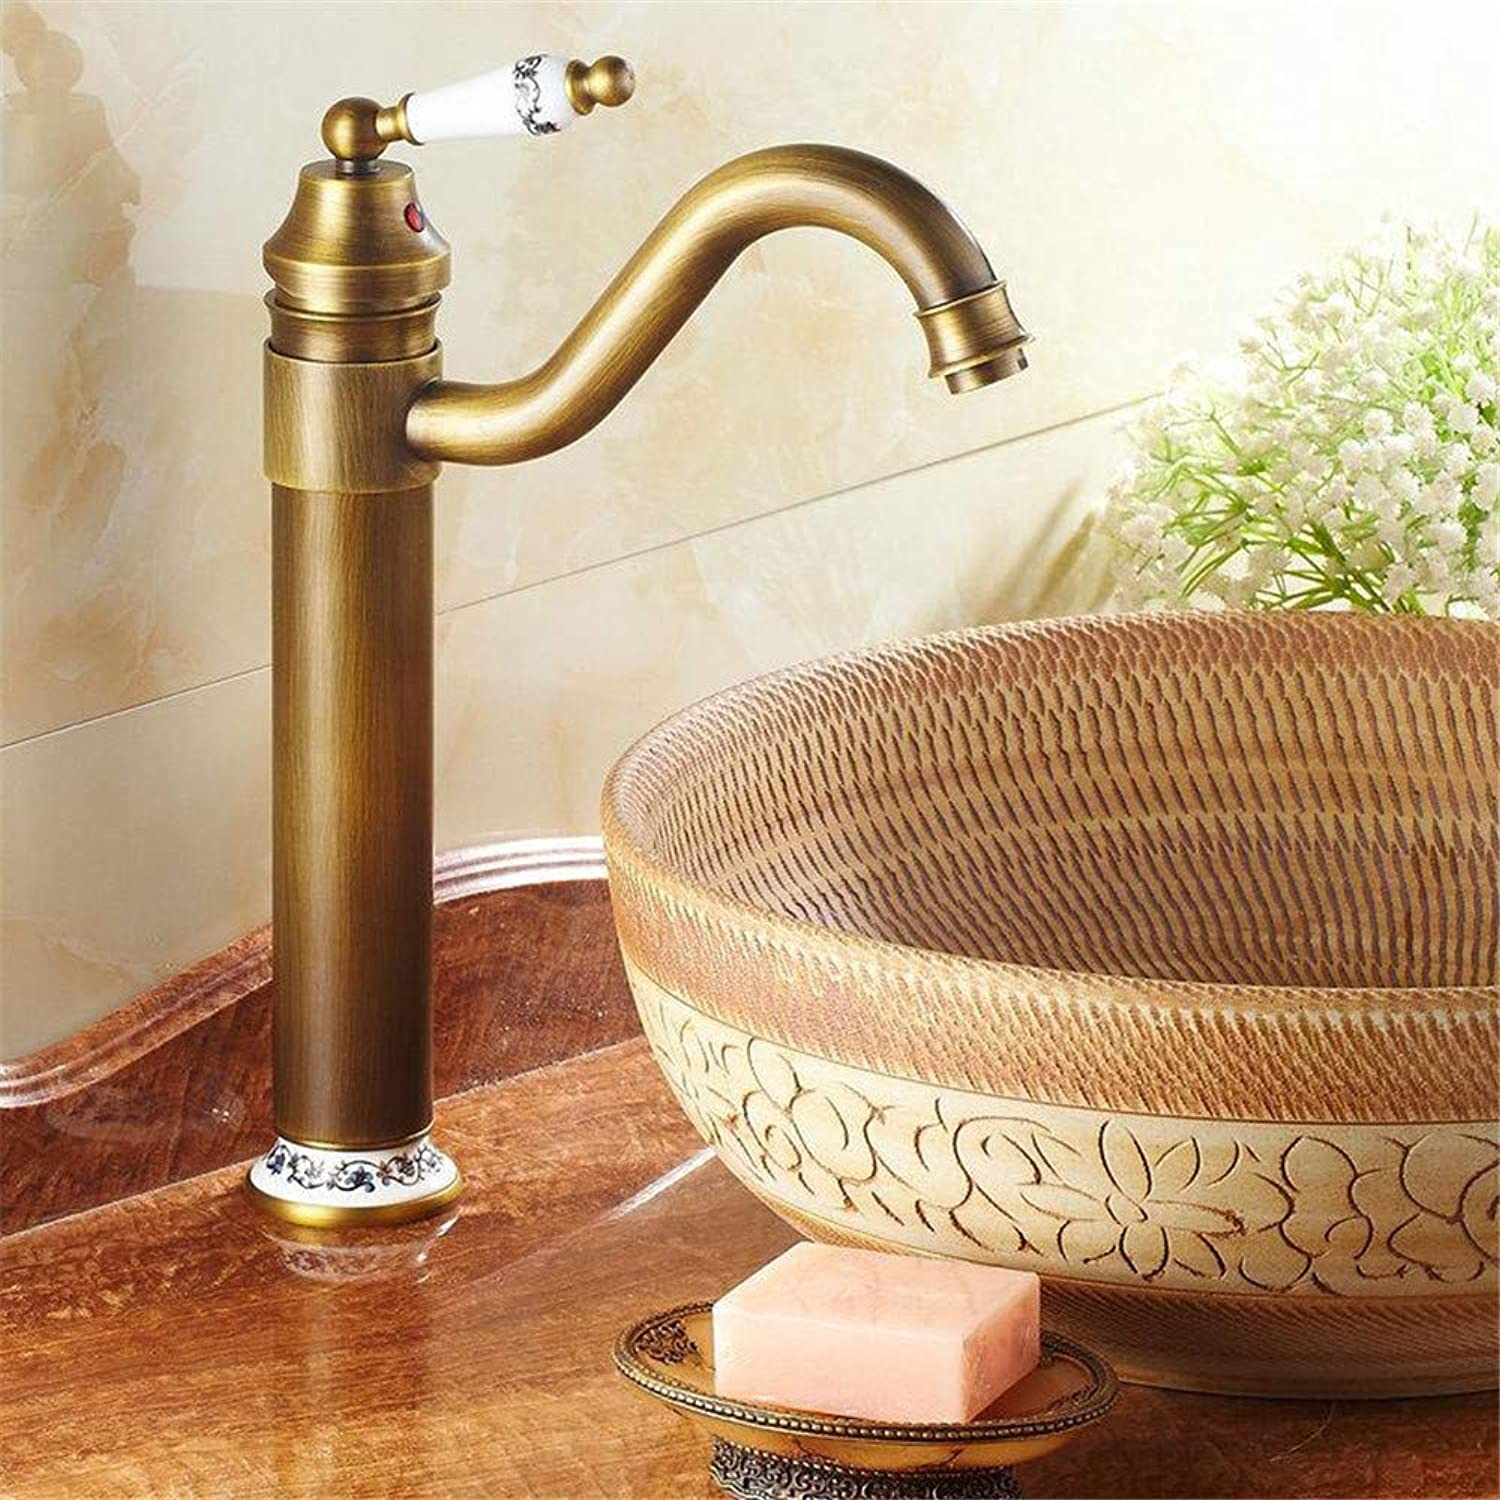 Decorry Kitchen Sink Bathroom Basin Faucets Brass Faucet Mixer Tap Swivel 9881 9882 9883 B